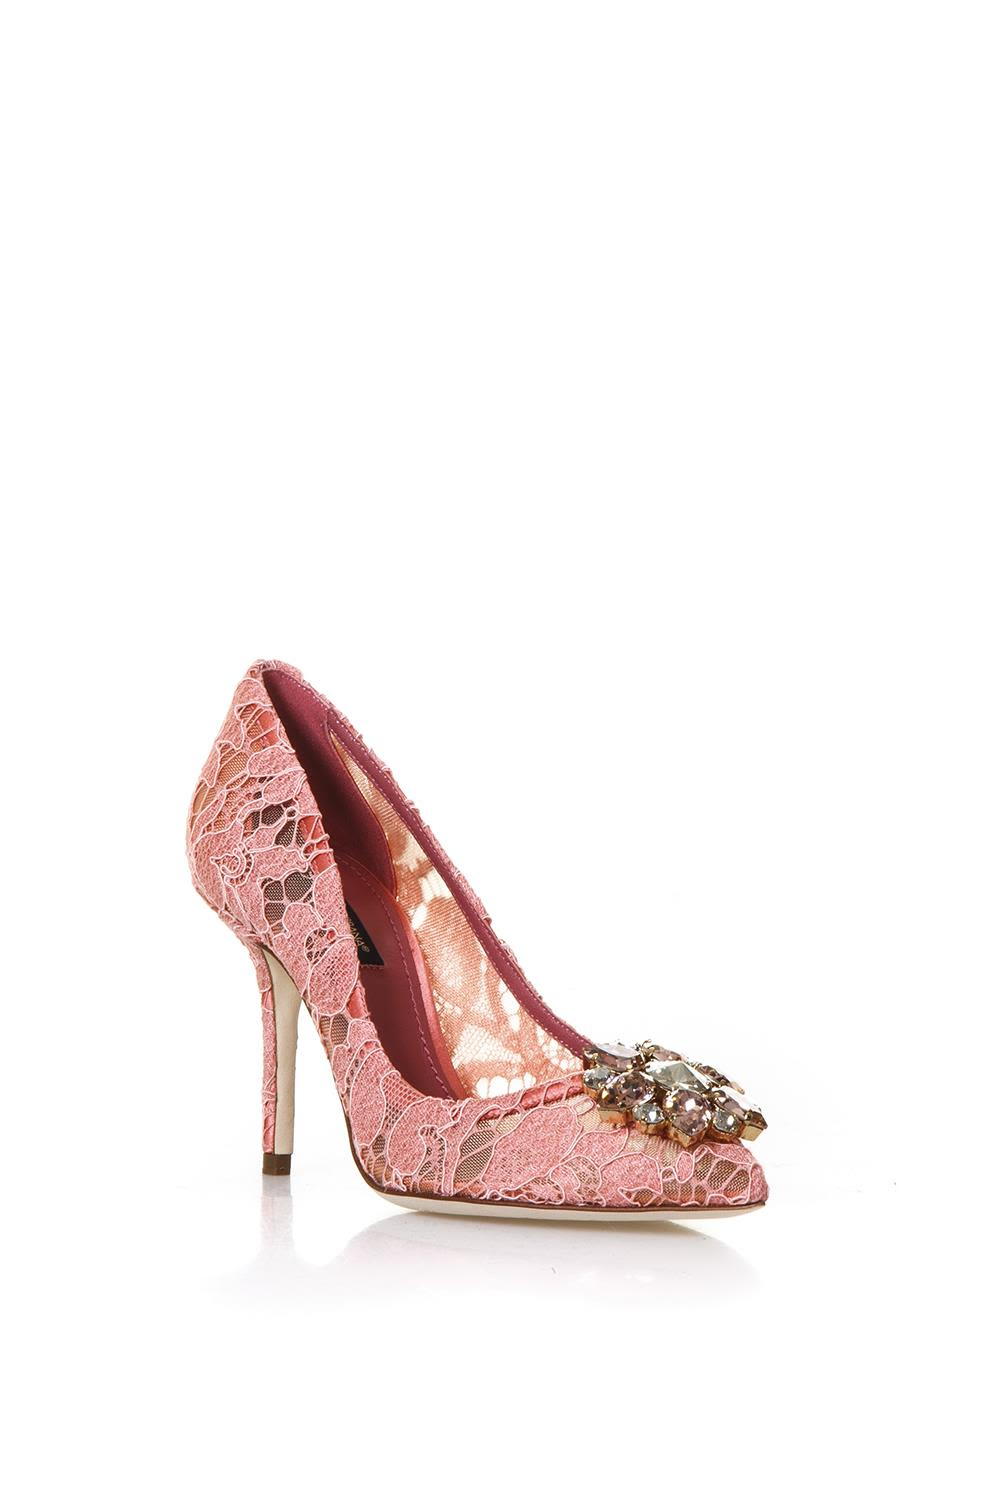 Bellucci Embellished Lace Pumps - IT38.5 / Blue Dolce & Gabbana